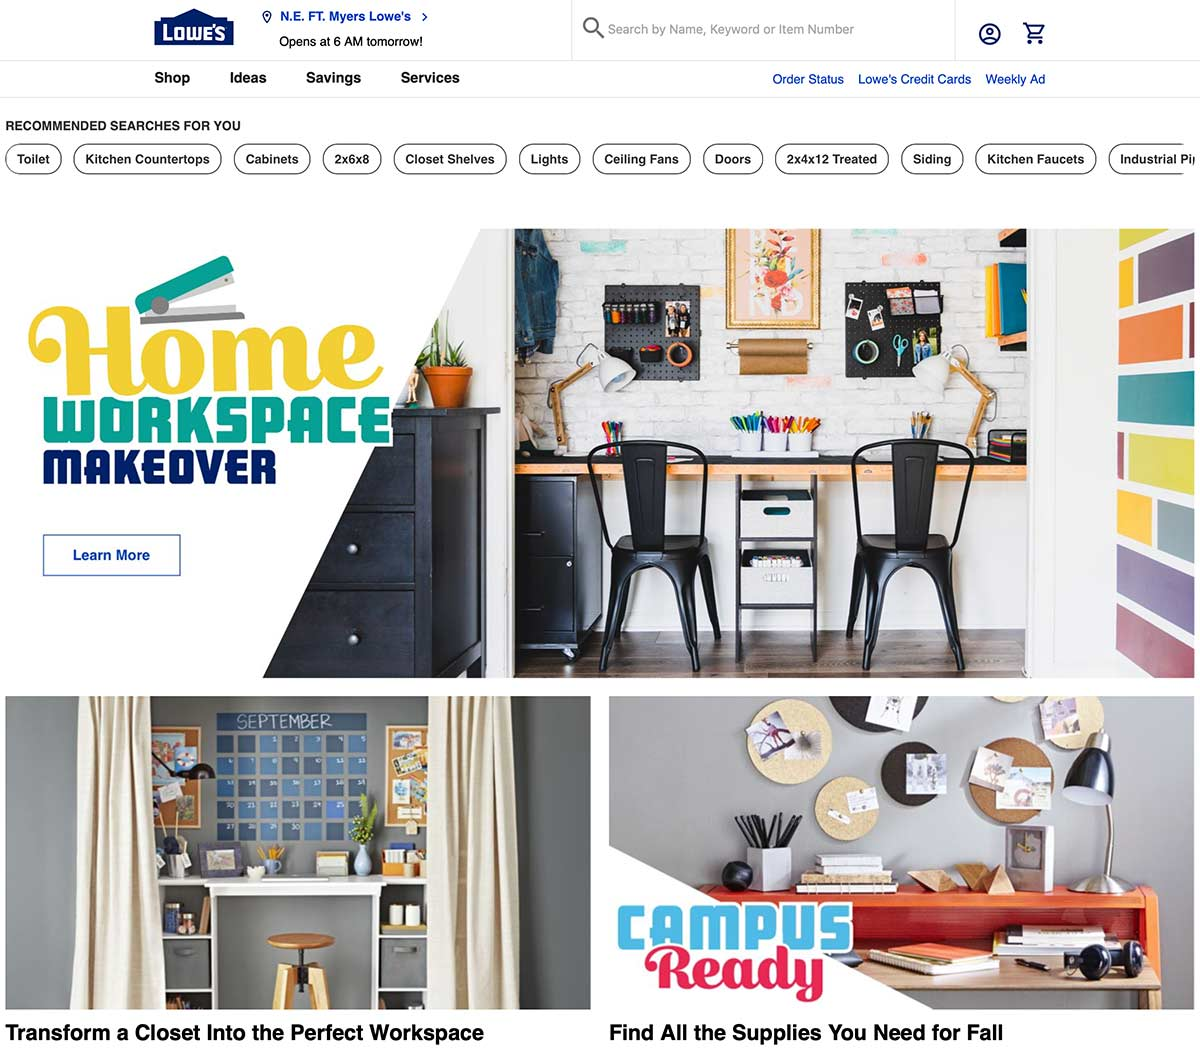 Lowe's homepage with home office space